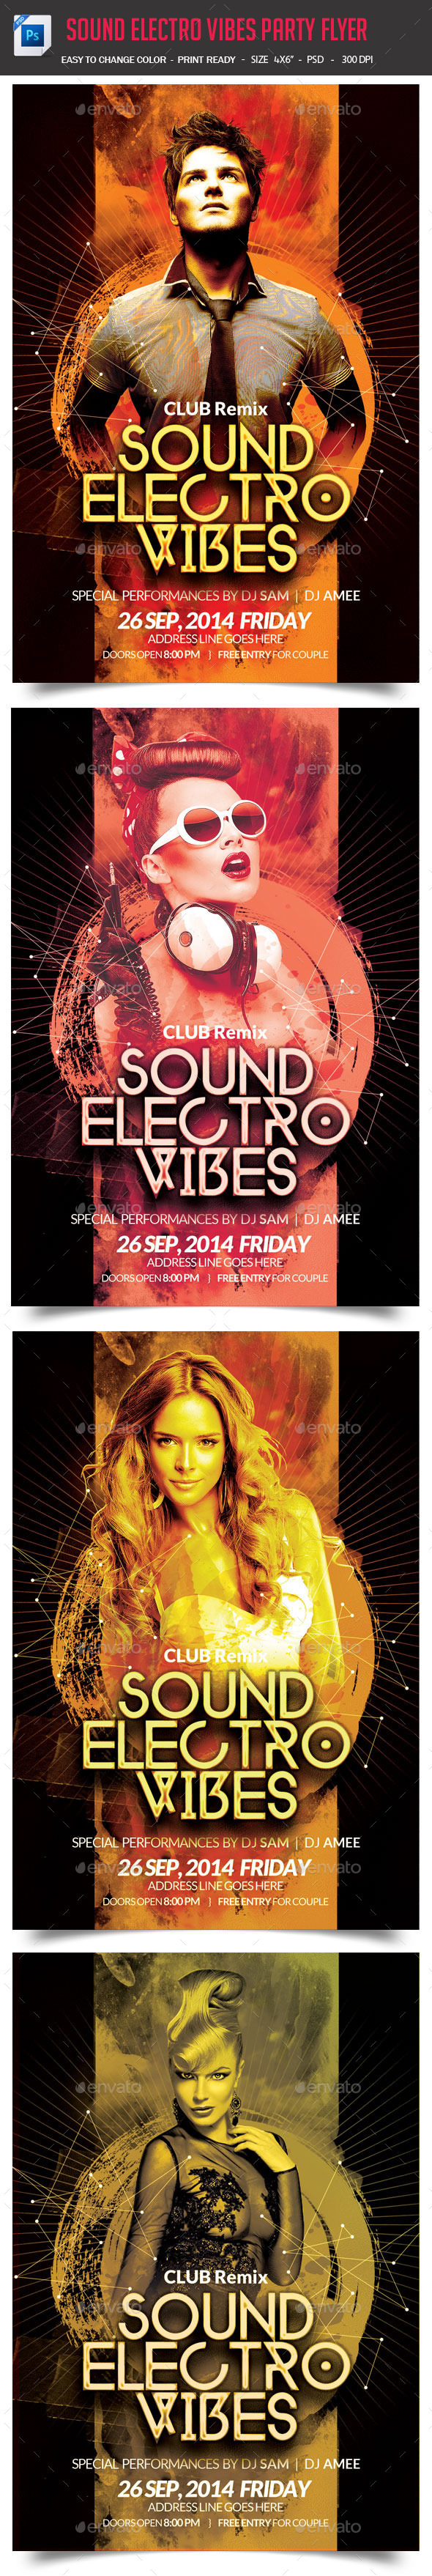 GraphicRiver Sound Electro Vibes Party Flyer 9136028